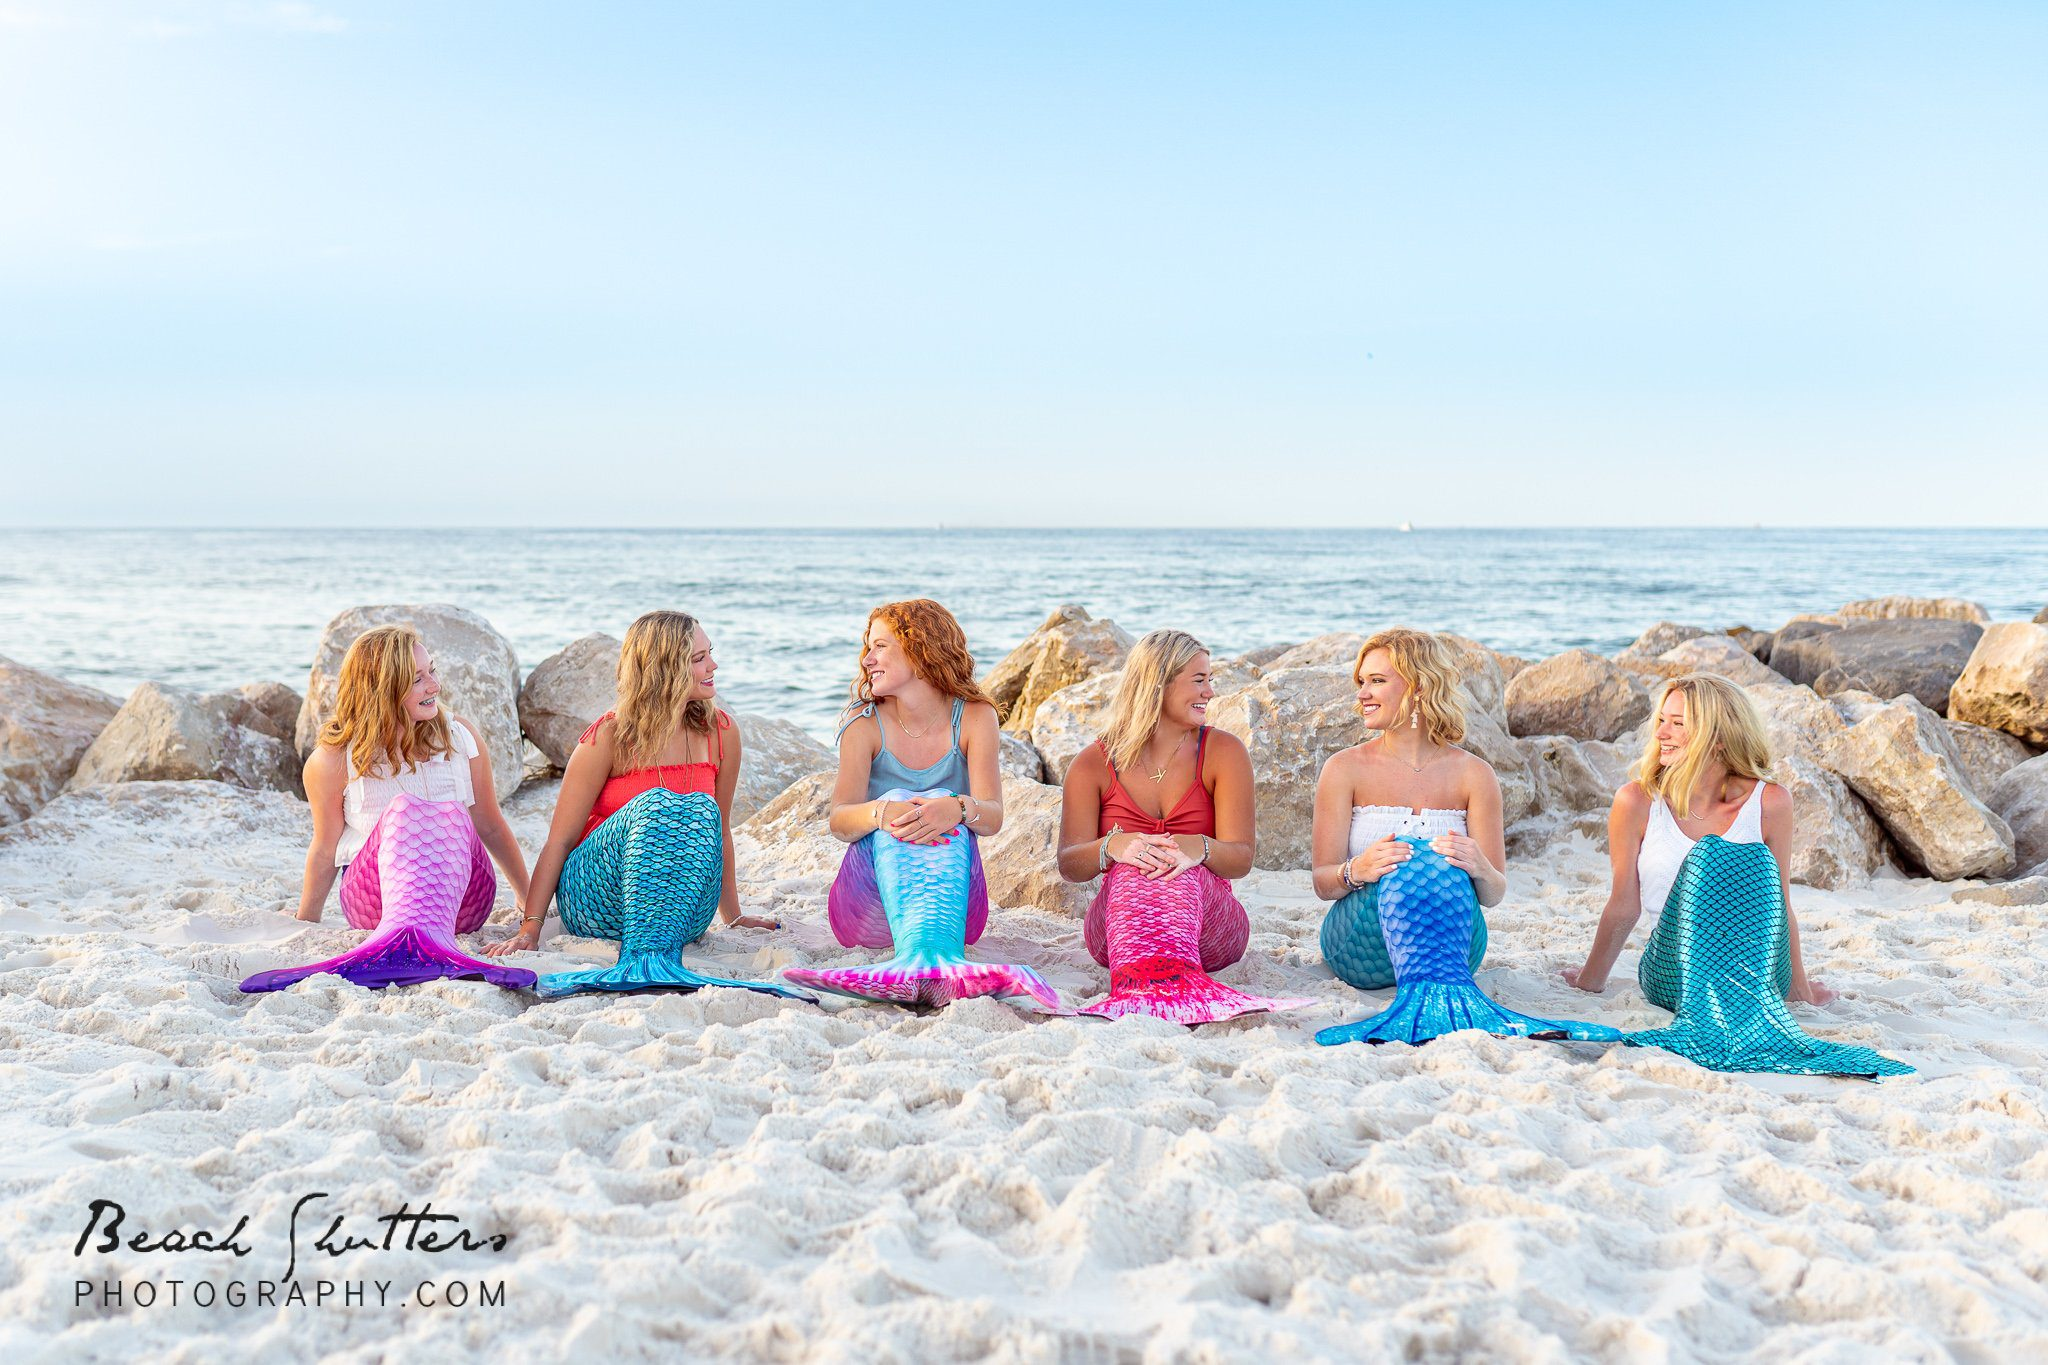 Beach Shutters Photography in Gulf Shores